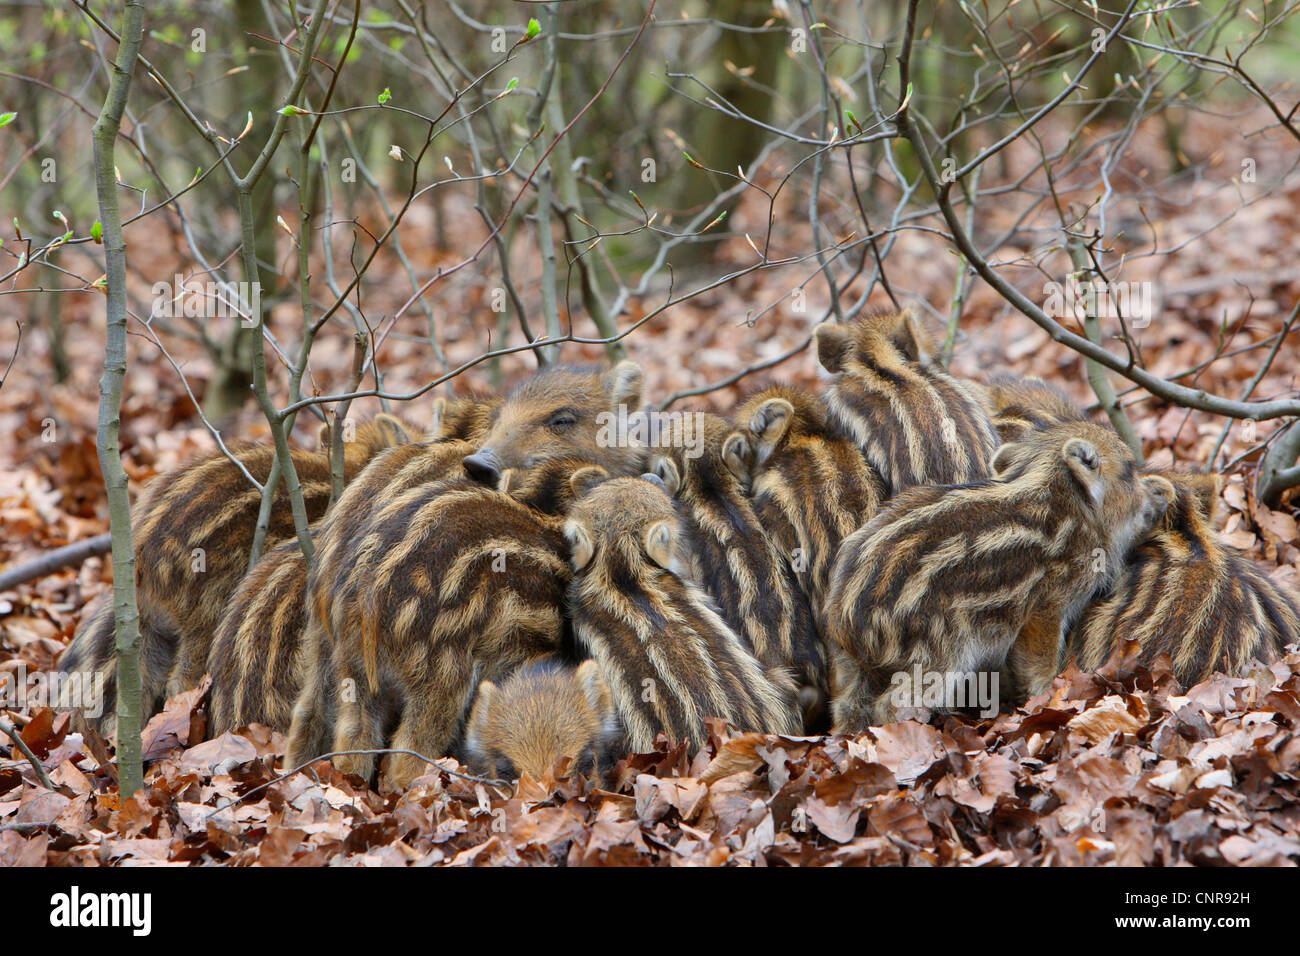 wild boar, pig, wild boar (Sus scrofa), shotes warming each other, Germany, North Rhine-Westphalia, Sauerland - Stock Image